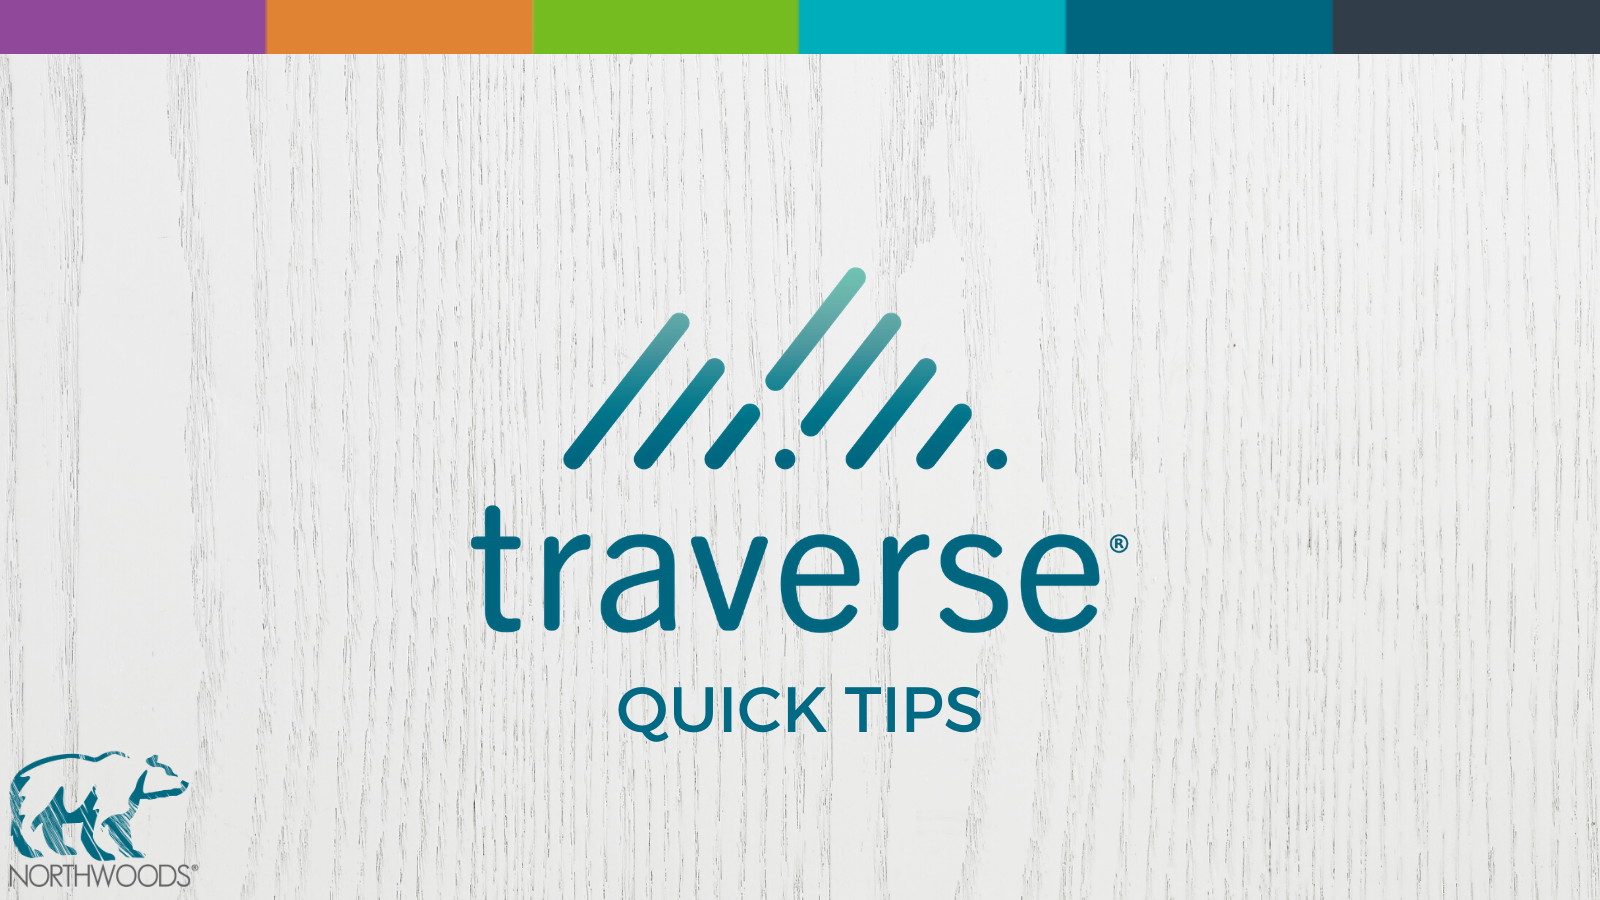 Traverse Quick Tips for Remote Workers